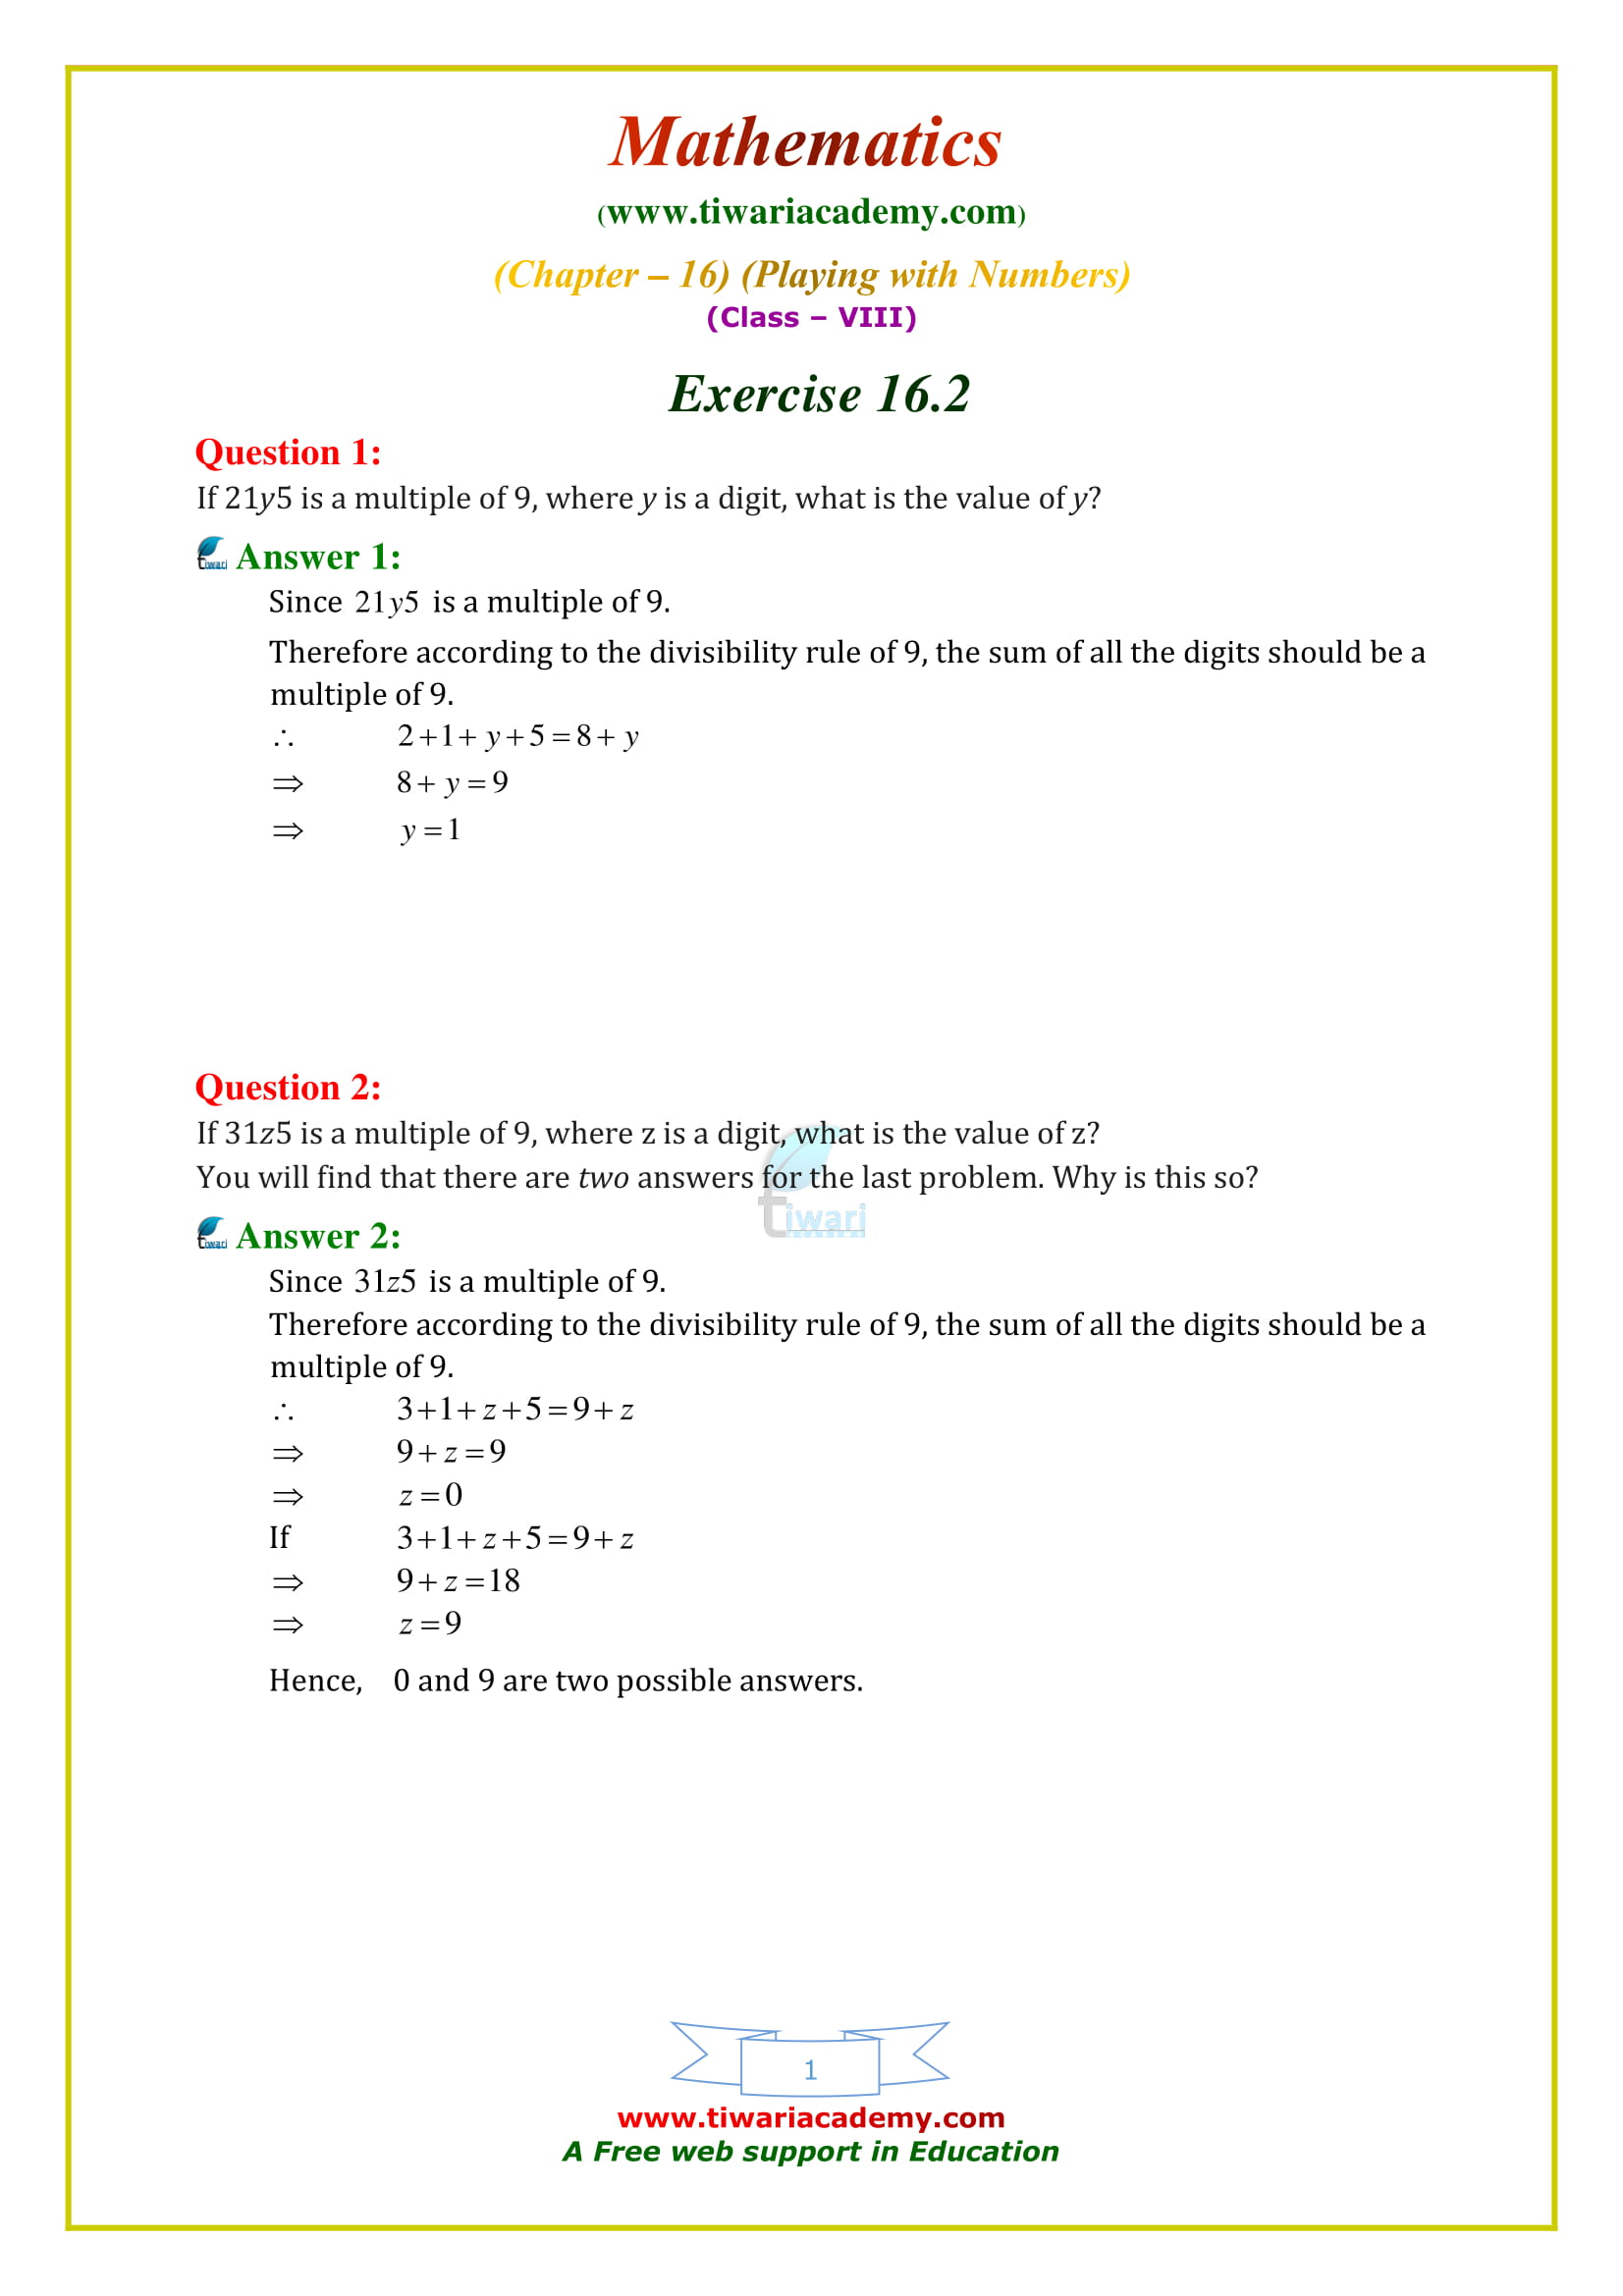 NCERT Solutions for Class 8 Maths Chapter 16 Exercise 16.2 Playing with numbers